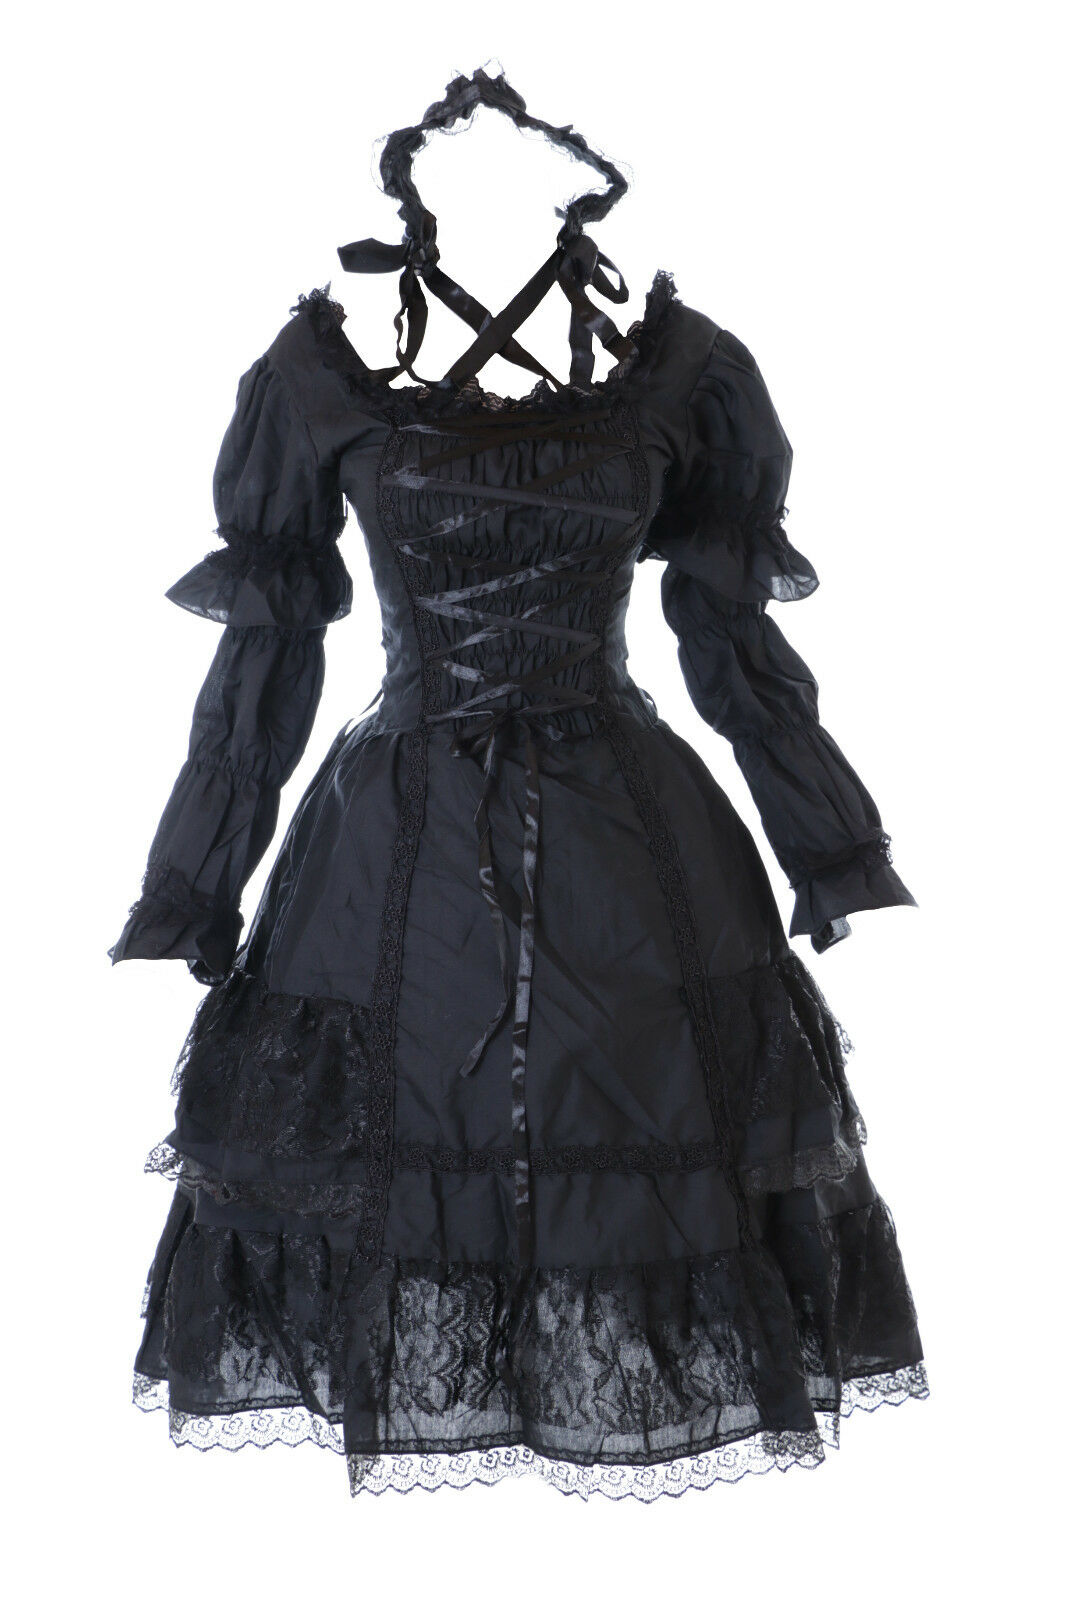 M-3315 gothique lolita dentelle schwarz robe manches amovibles Costume Dress Cosplay